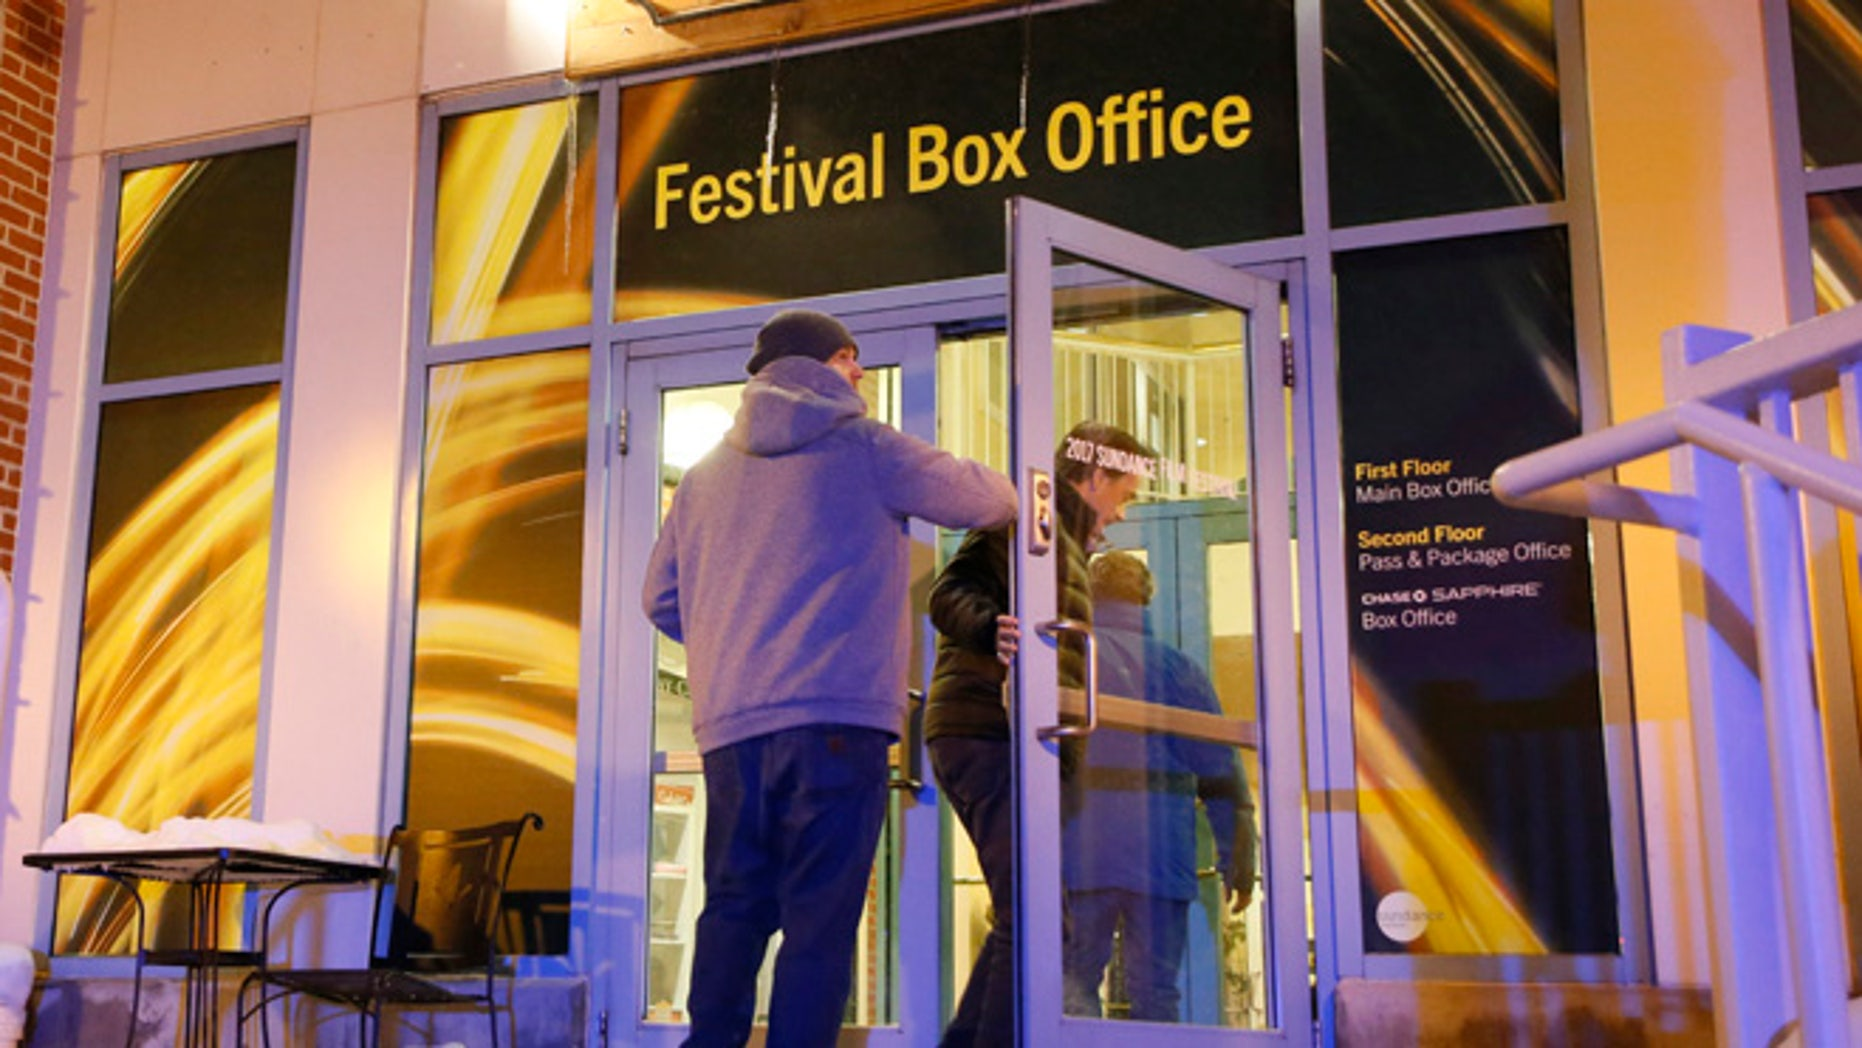 The Sundance Film Festival's network systems were subject to a cyberattack on Saturday.